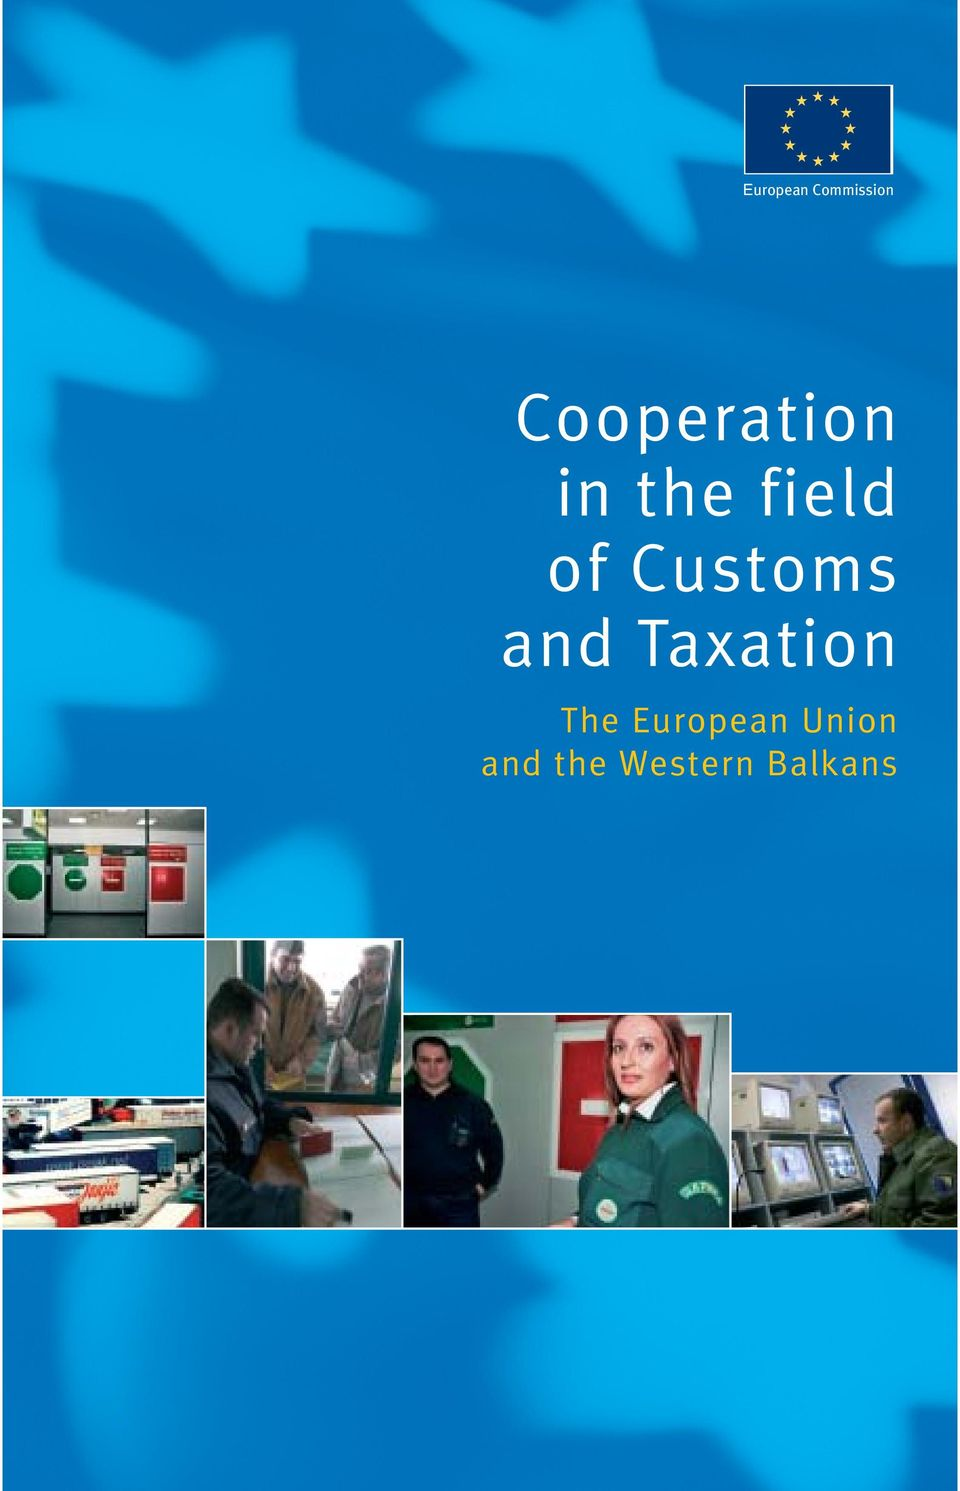 Customs and Taxation The